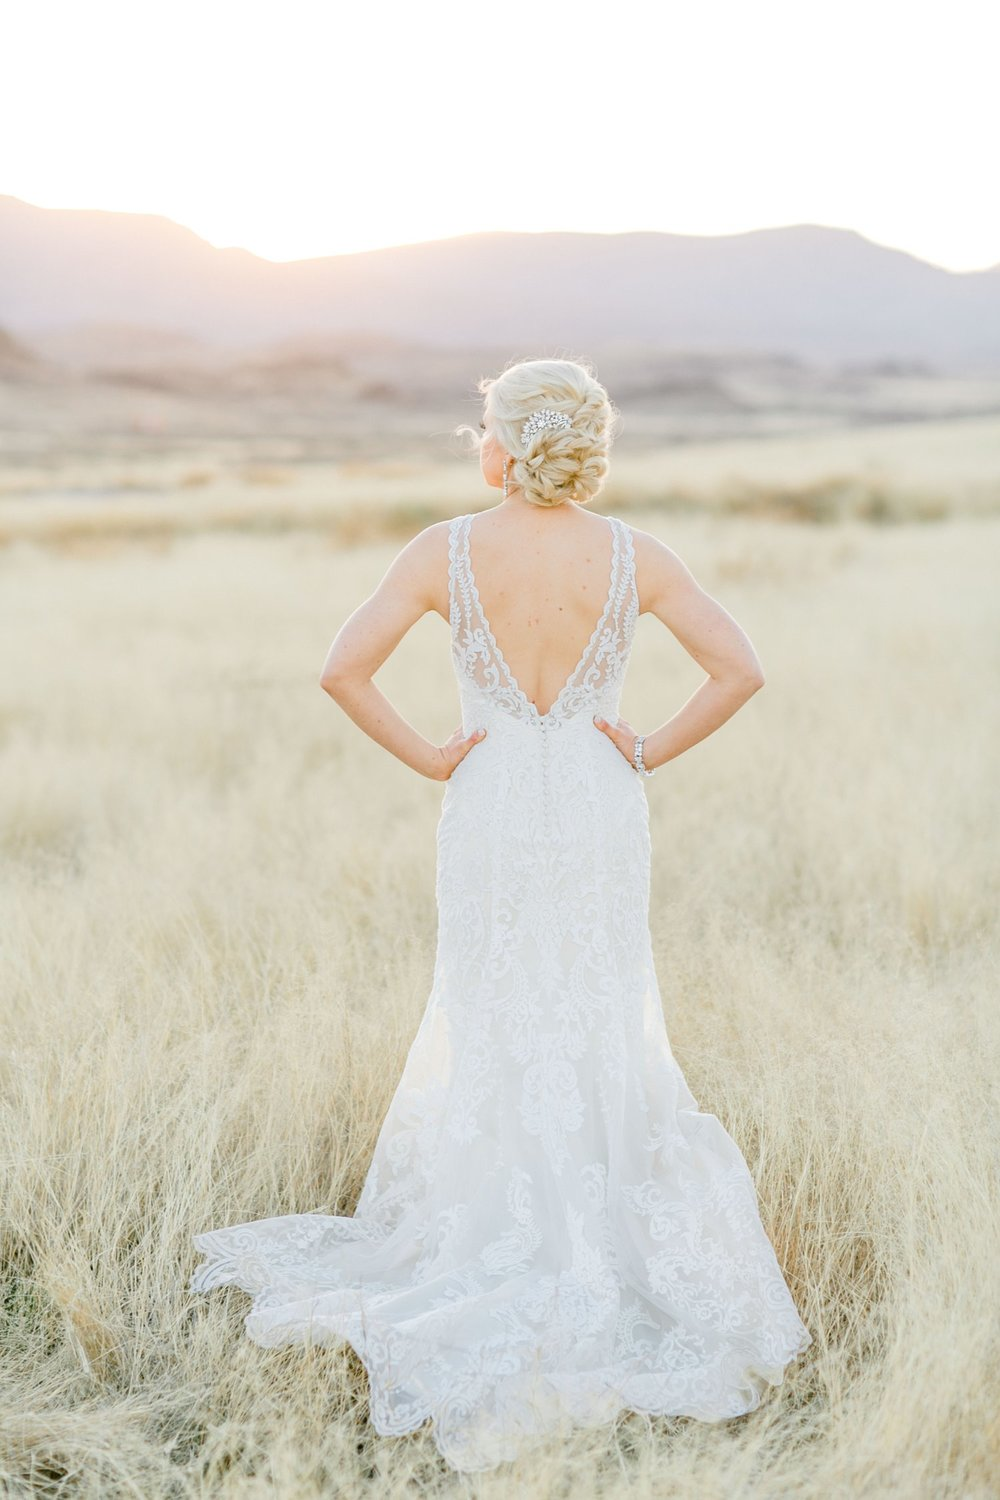 Jenna-evans-bridals-balmorhea-texas-fort-davis-wedding-photographer-lubbock-photographer__0065.jpg